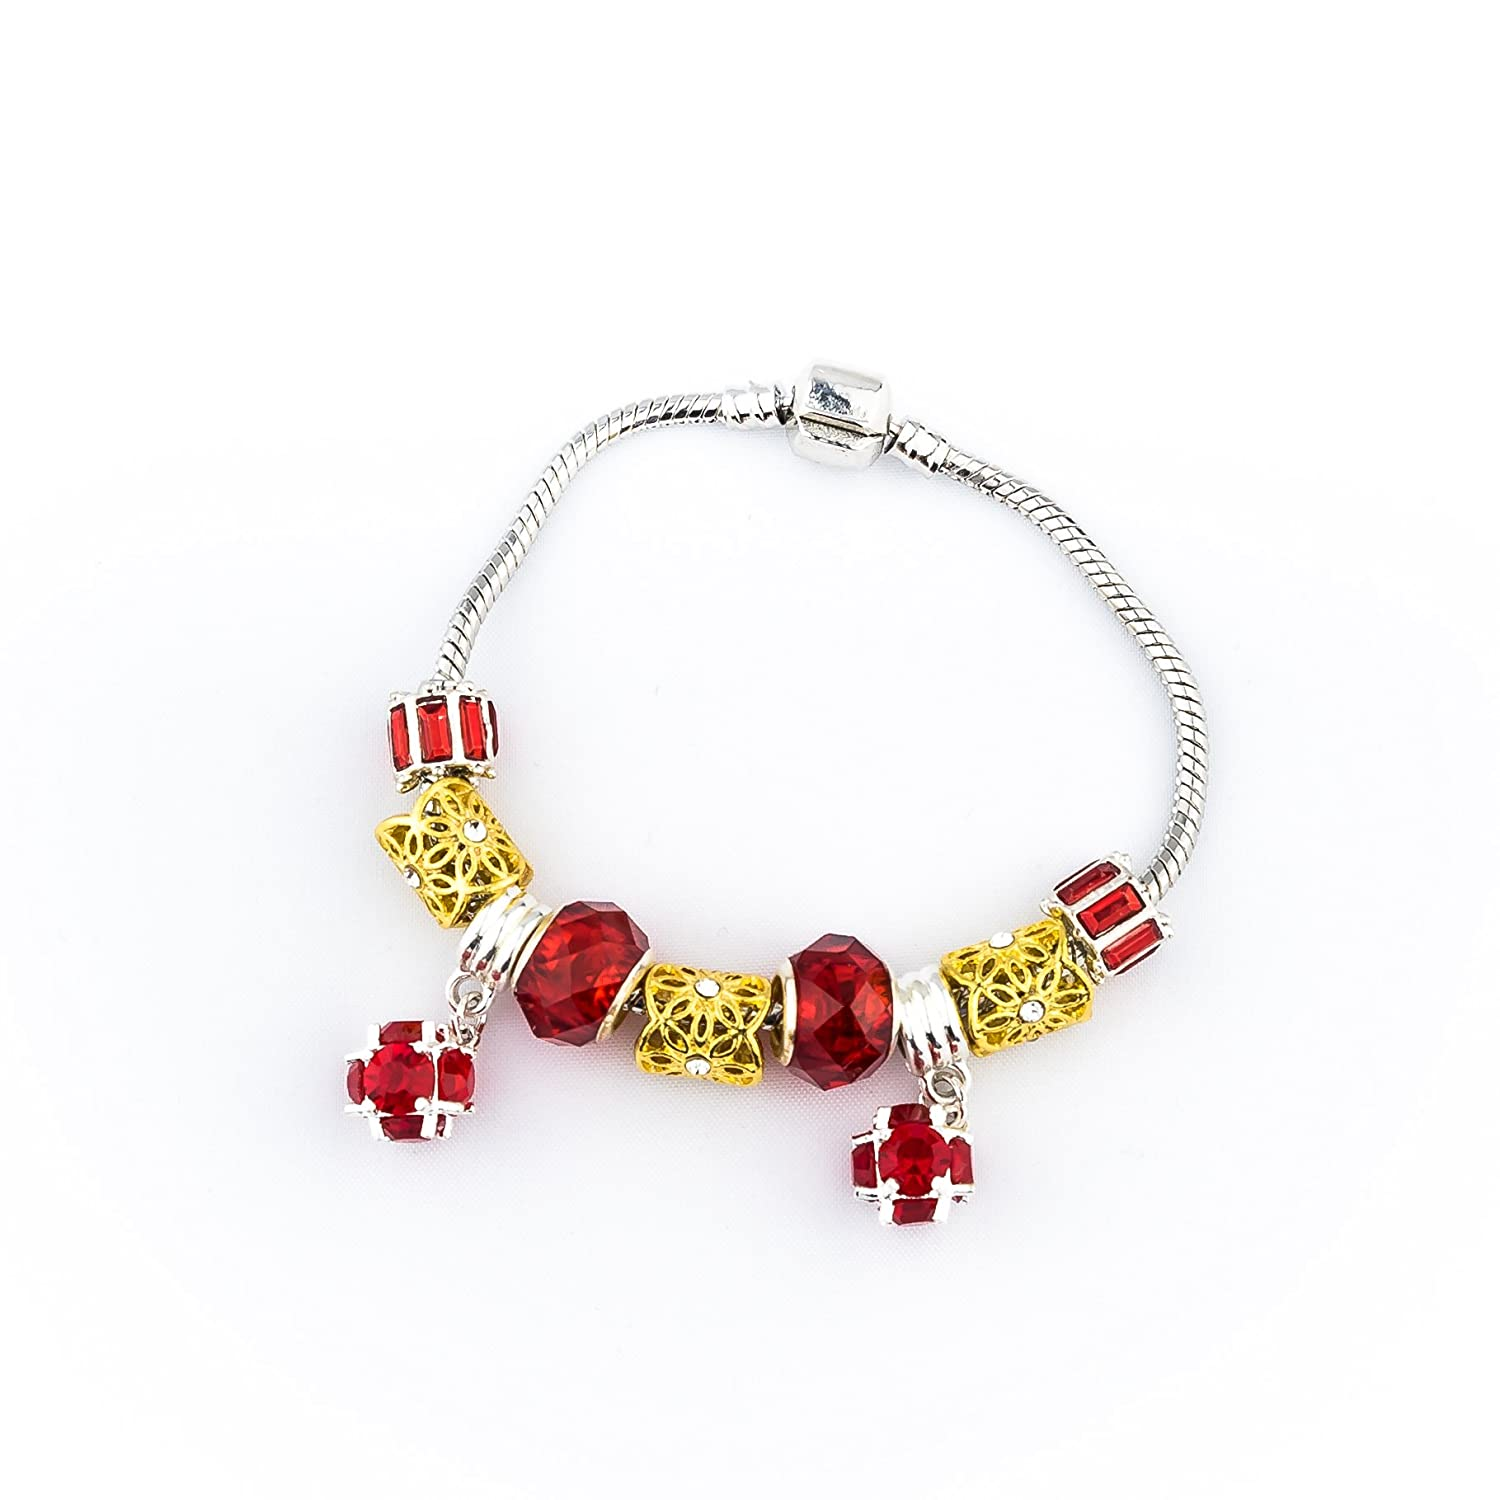 Gold and Red Beads Sliver Plated Snake Chain Charm Strand Bracelet